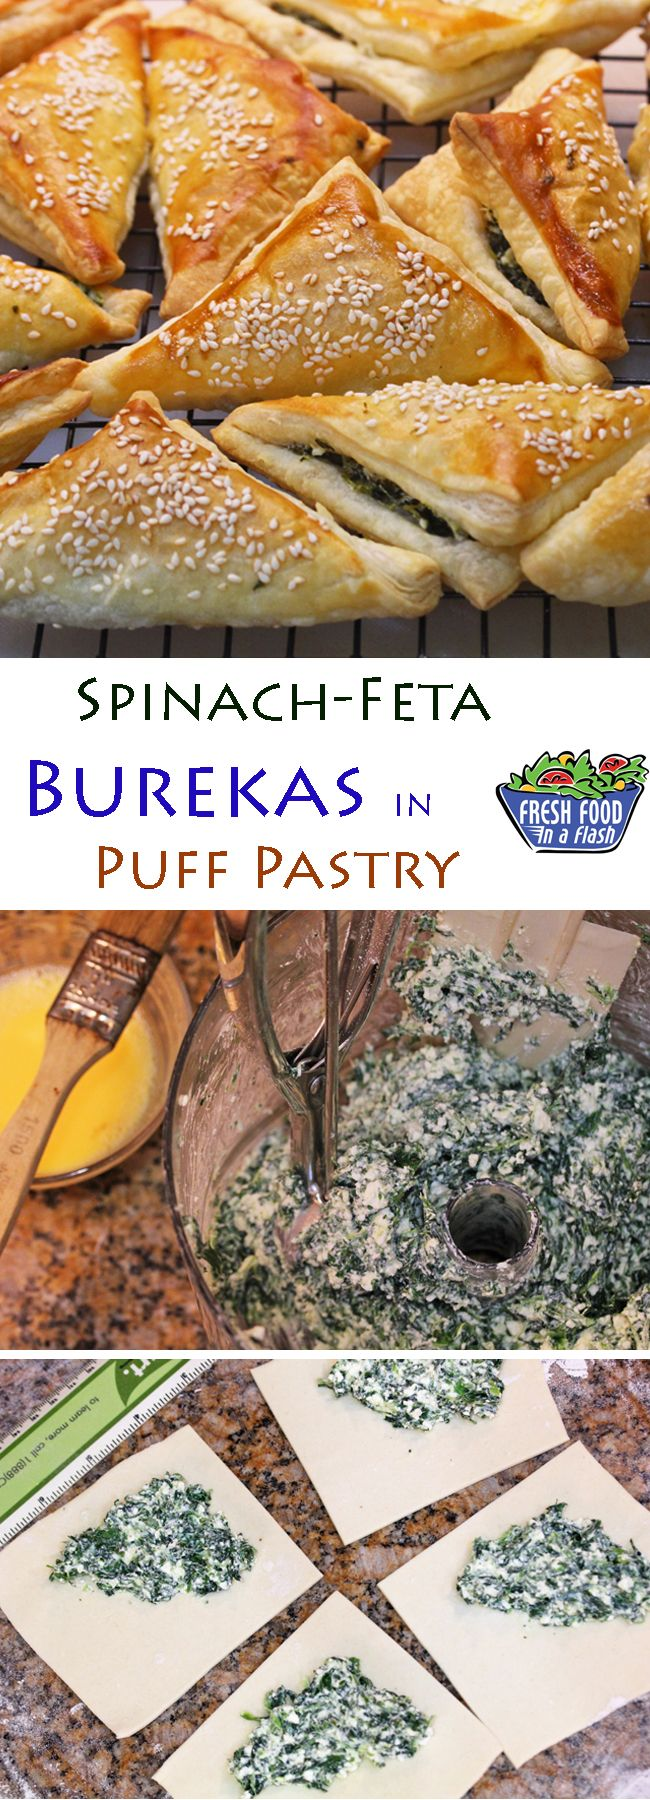 Joan Nathan's Spinach-Feta Burekas in Puff Pastry - Fresh Food In A Flash Appetizer